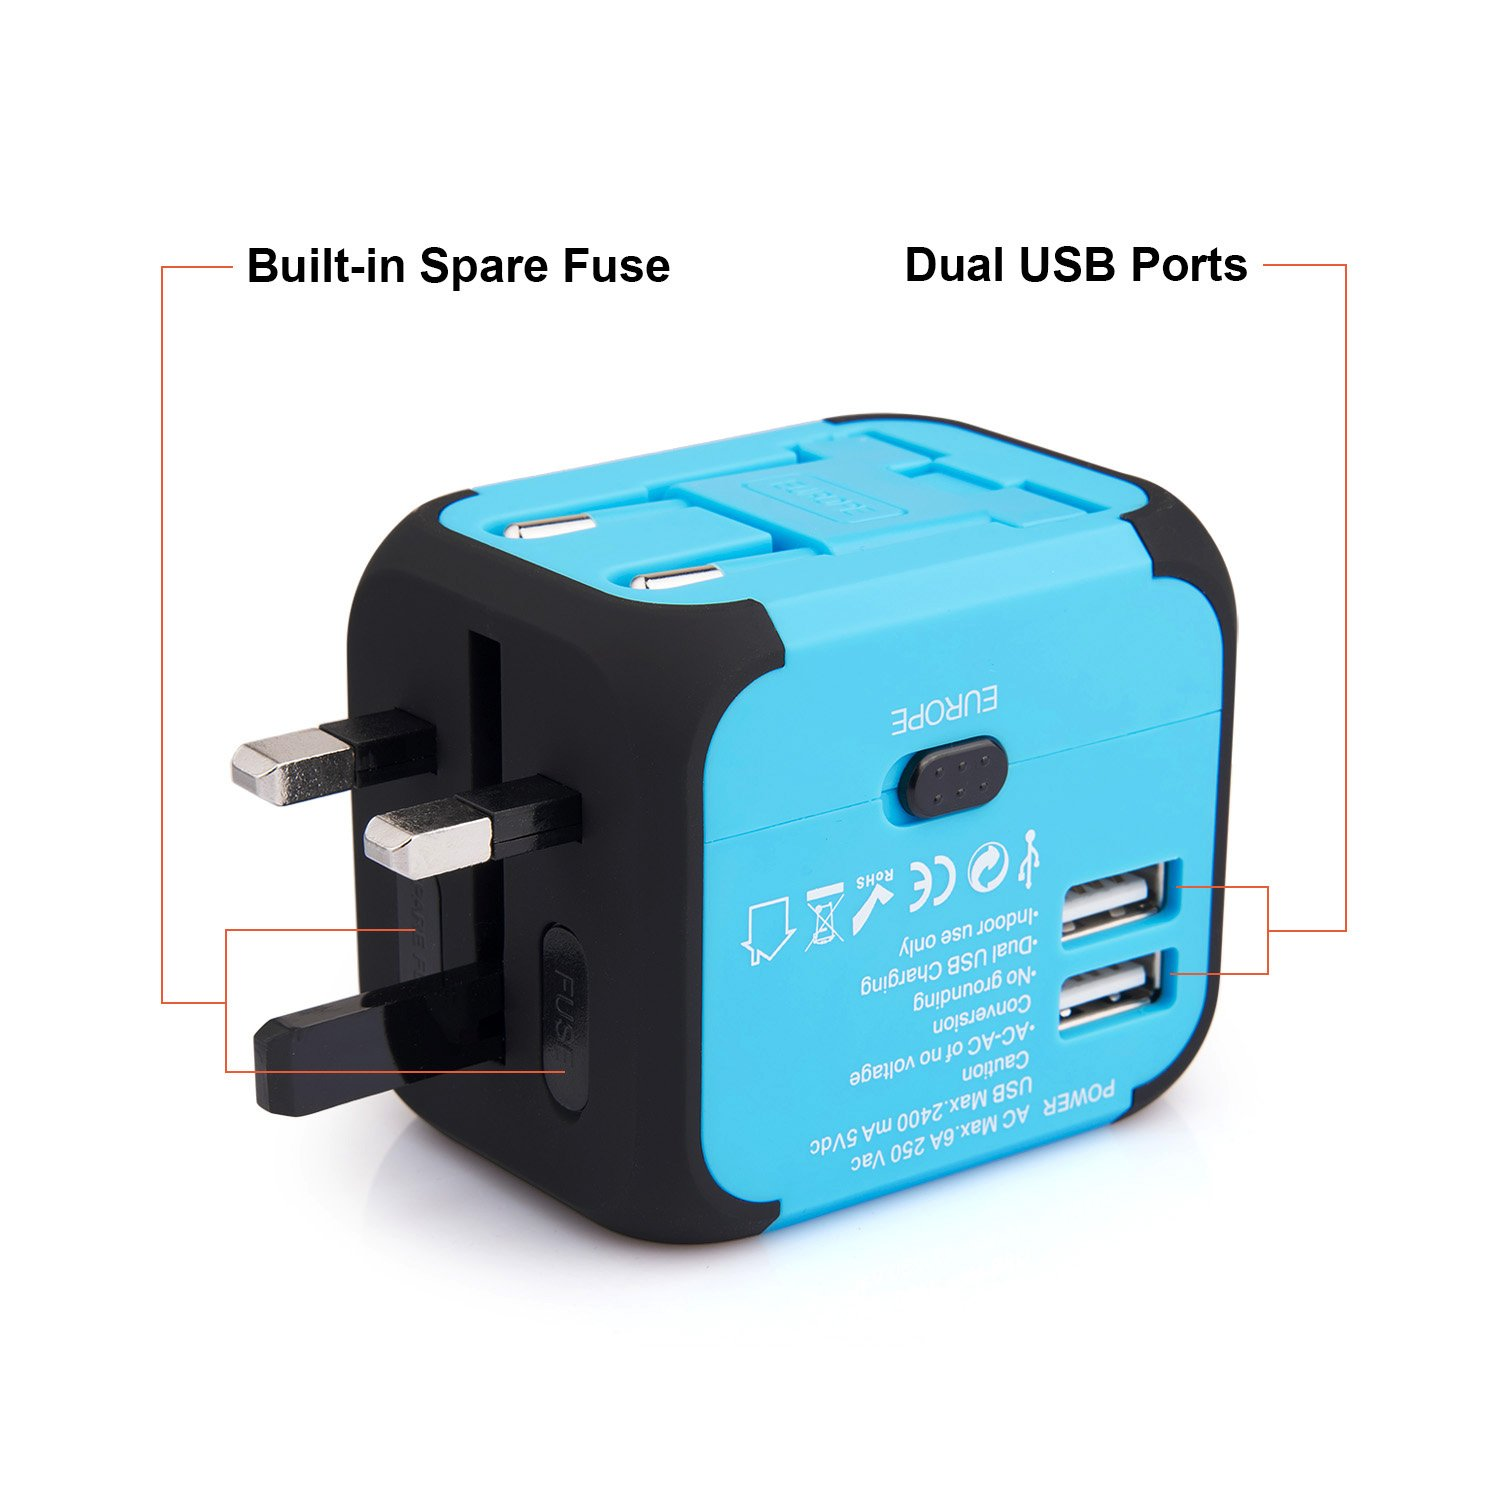 DooVii International Travel Adapter with 2.4A Dual USB Charger /& Worldwide AC Wall Outlet Plugs for Europe US /& AU Built-in Spare Fuse,Blue,by DooVii UC02 UK